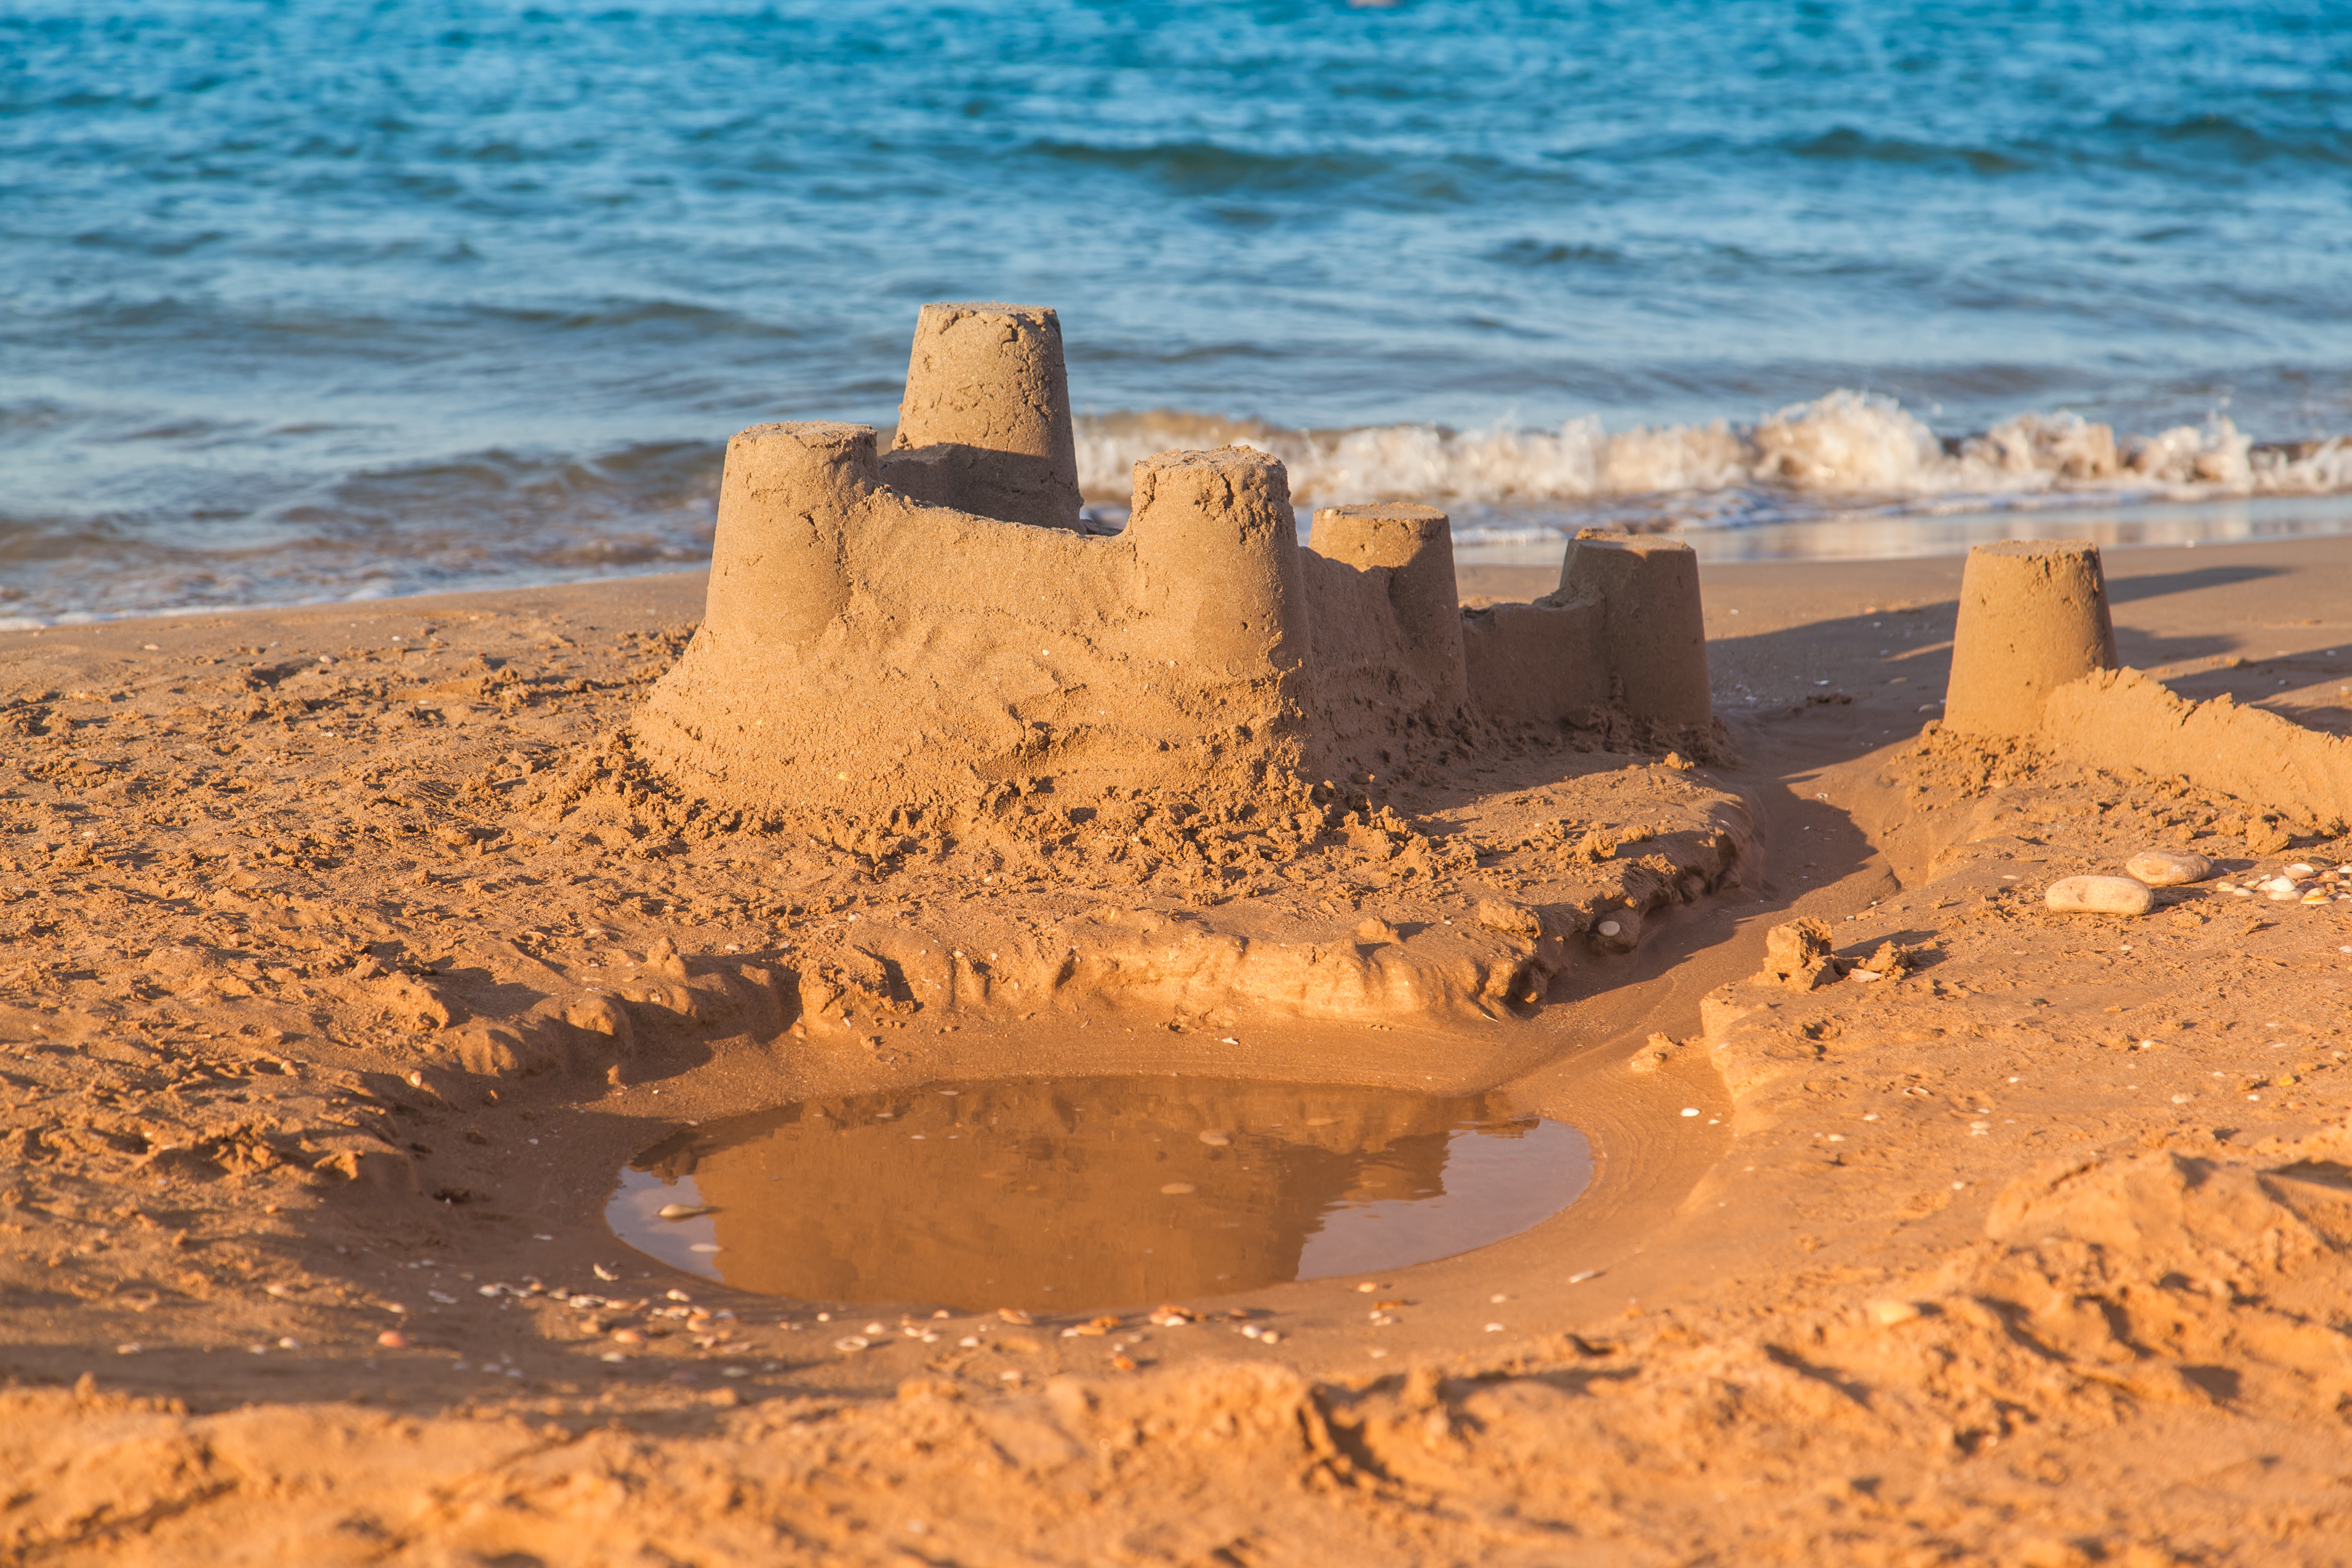 Not sure how to describe yourself on your CV? Build a sandcastle